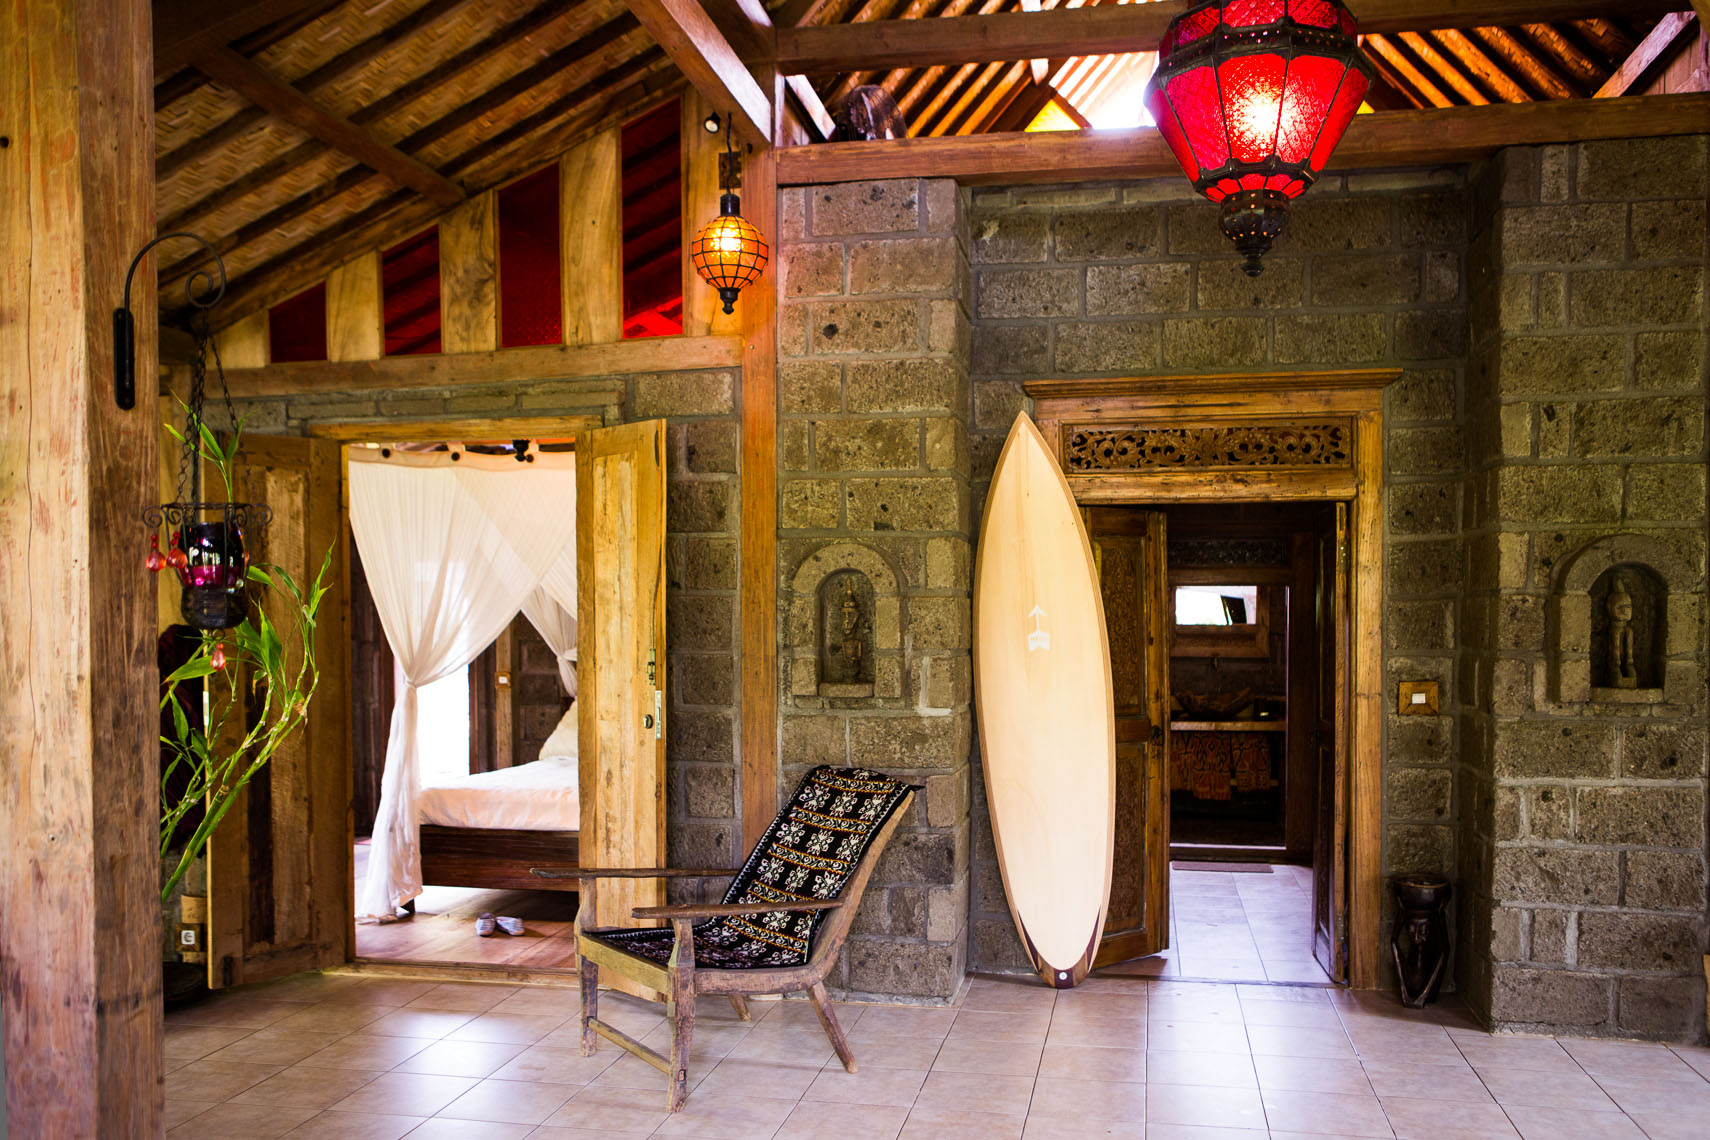 Interior of Balinese house with Hess Surfboard